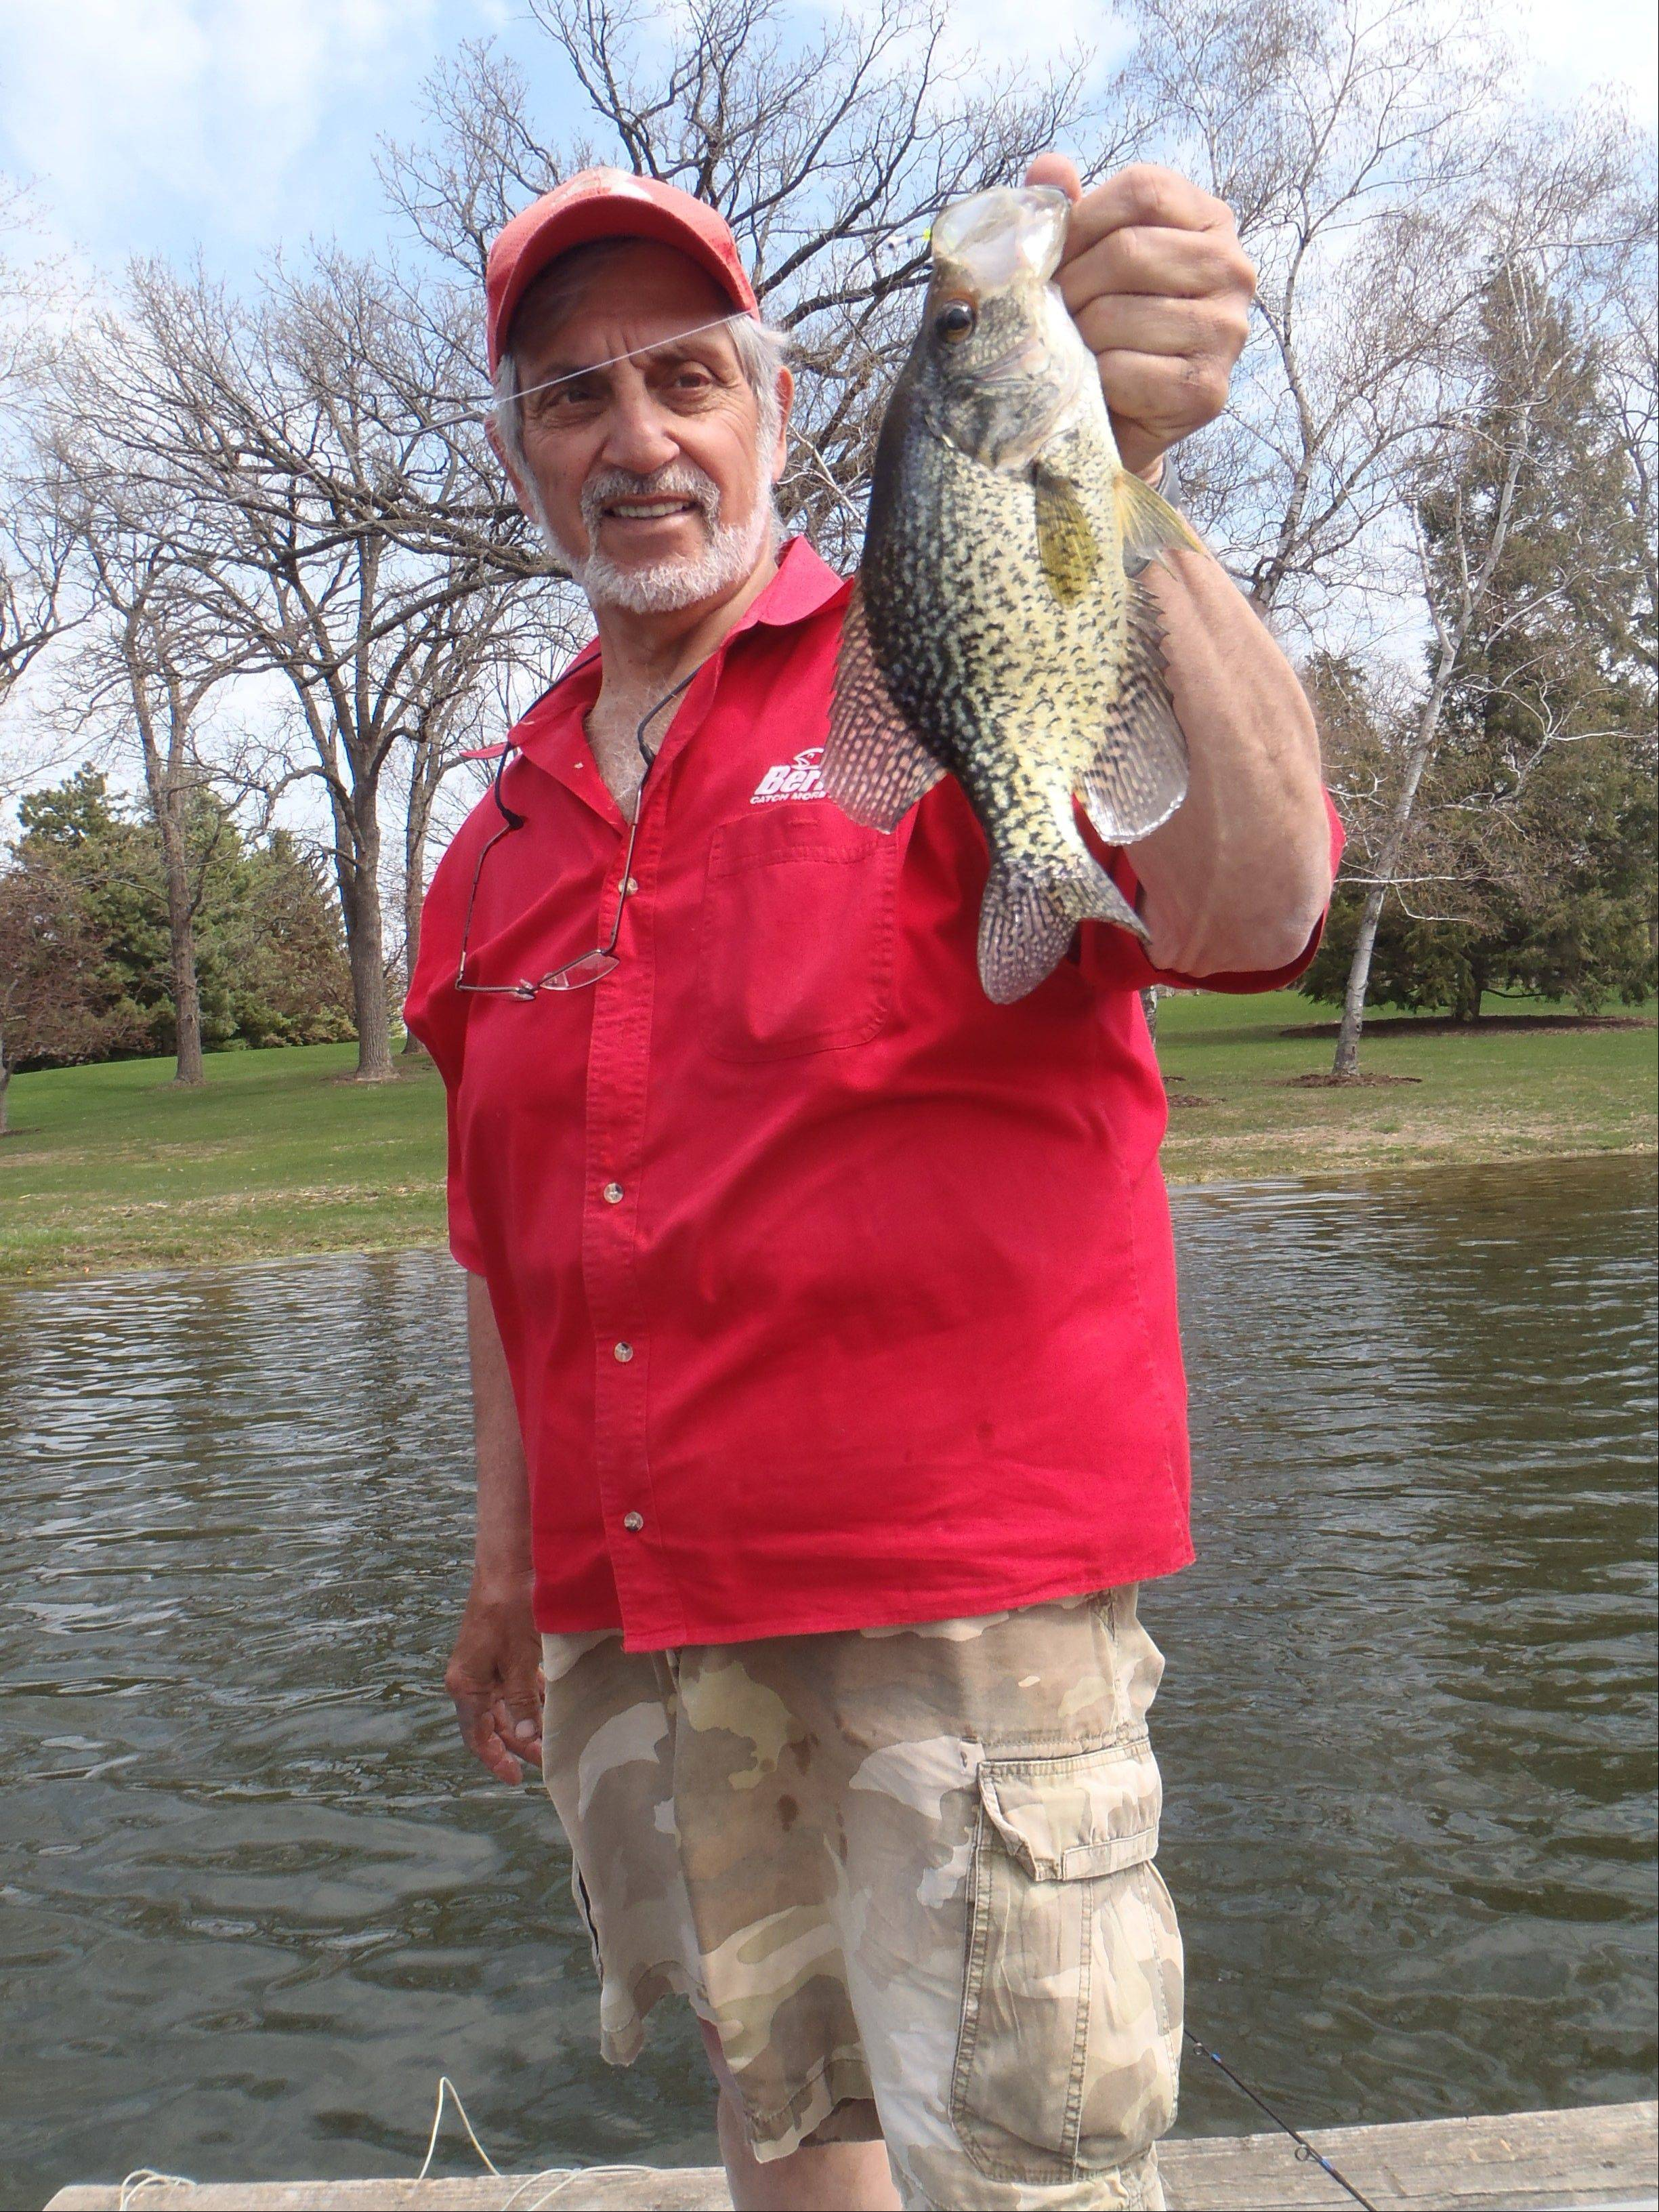 Watching a fishing master make sweet music